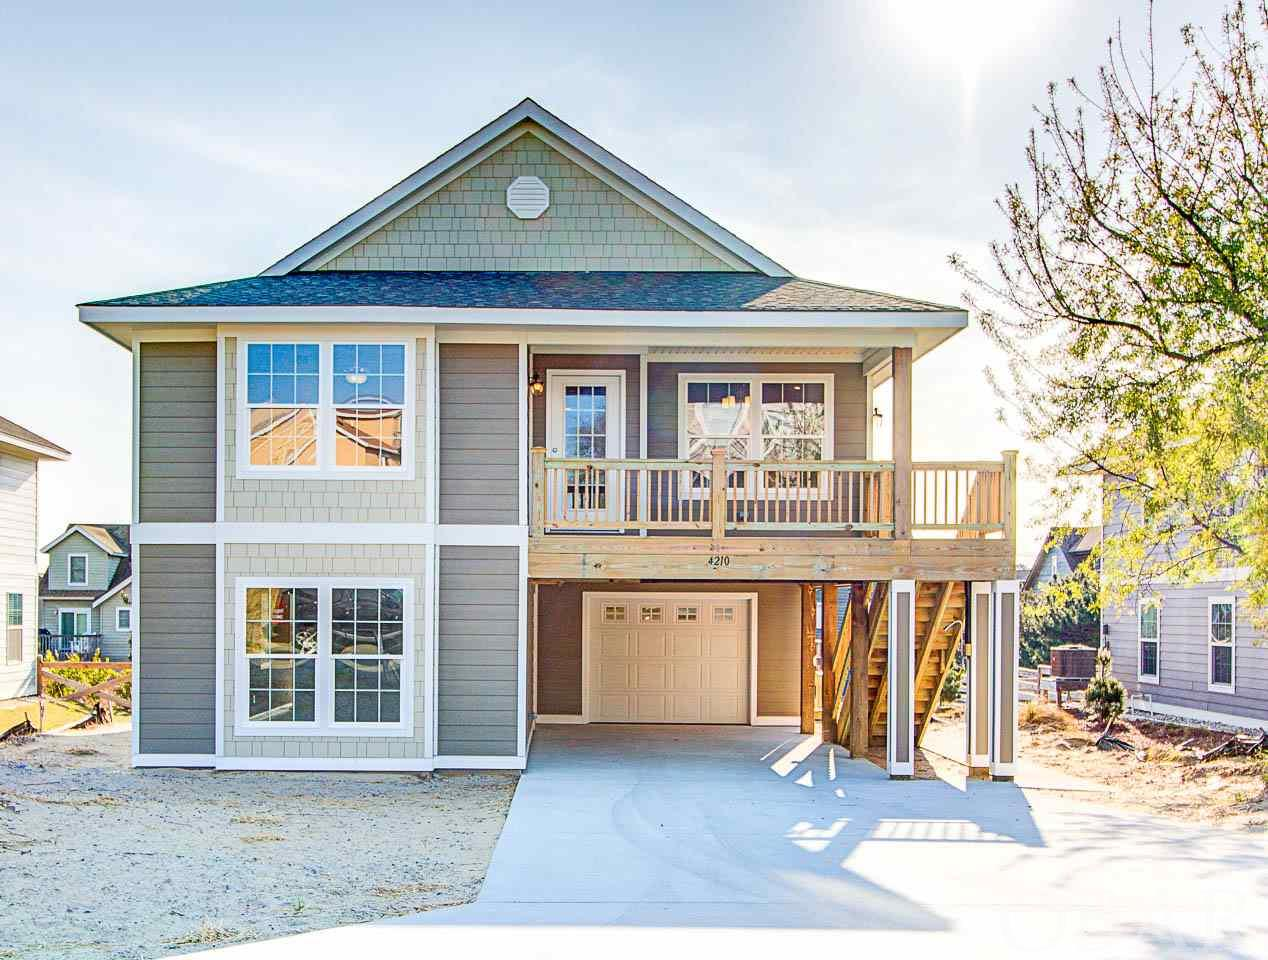 4210 Southridge Road, Nags Head, NC 27959, 4 Bedrooms Bedrooms, ,3 BathroomsBathrooms,Residential,For sale,Southridge Road,104613